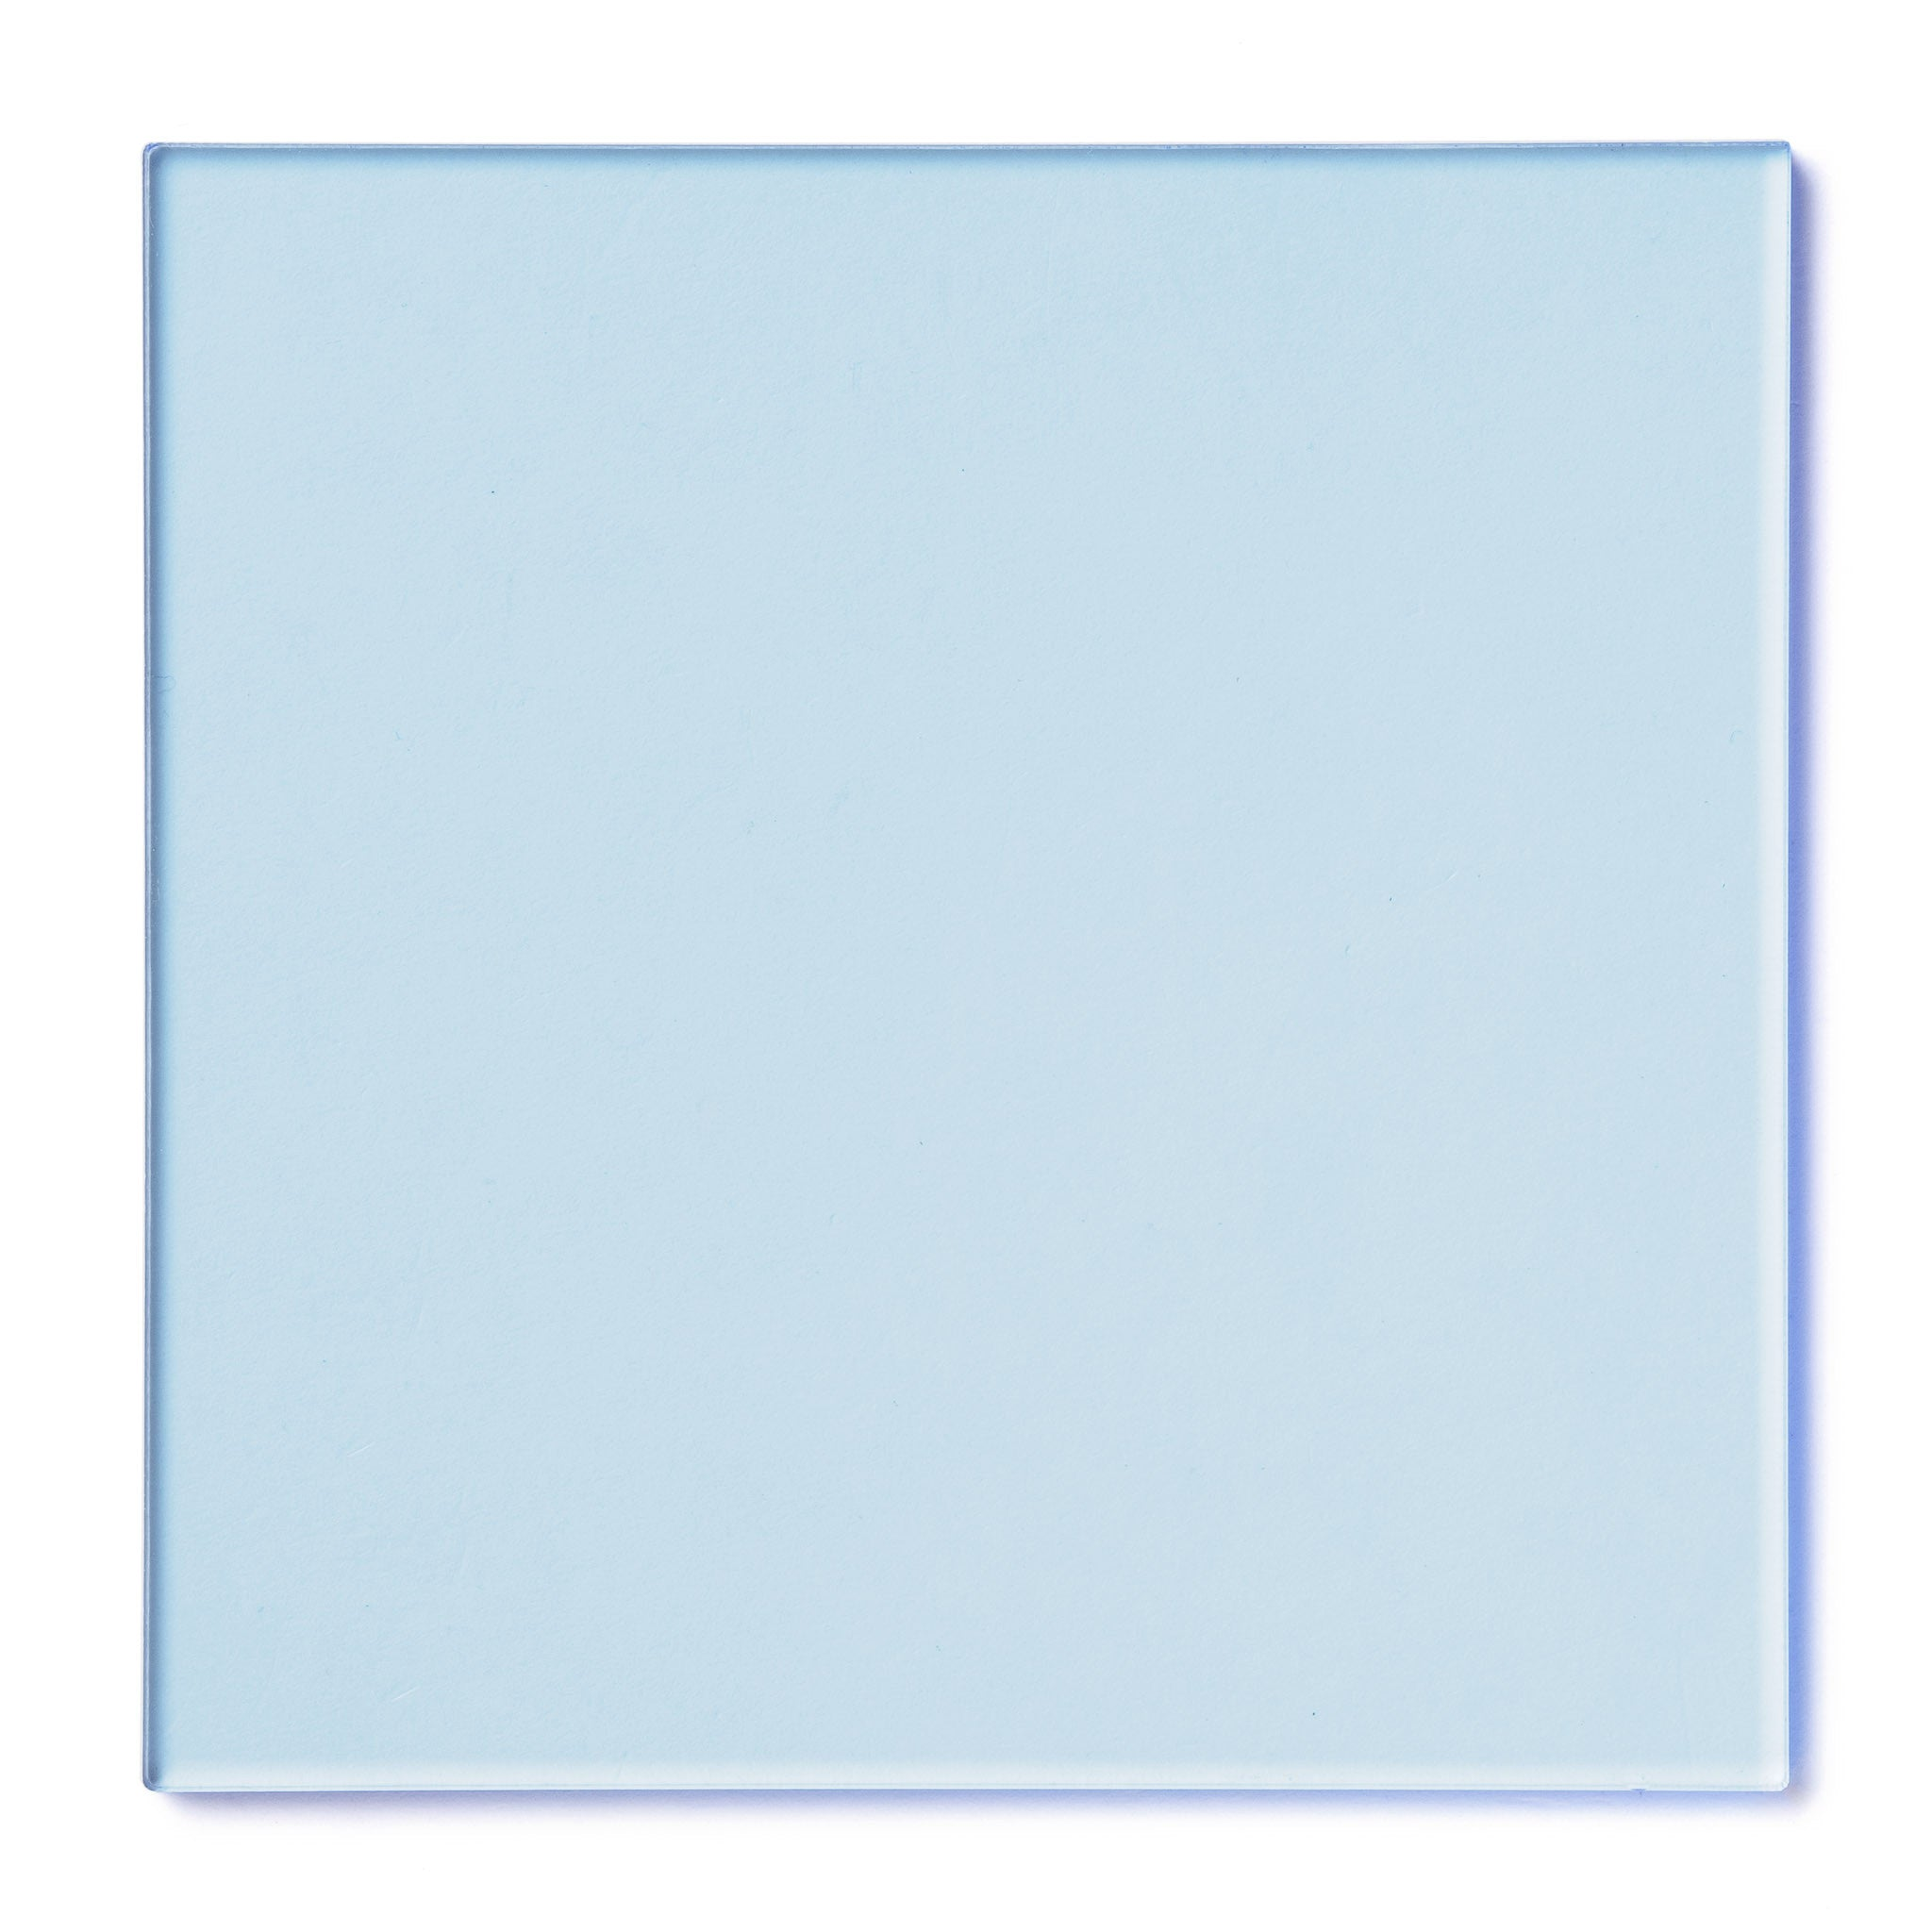 Blue Fluorescent Acrylic Plexiglass Sheet, color 5010